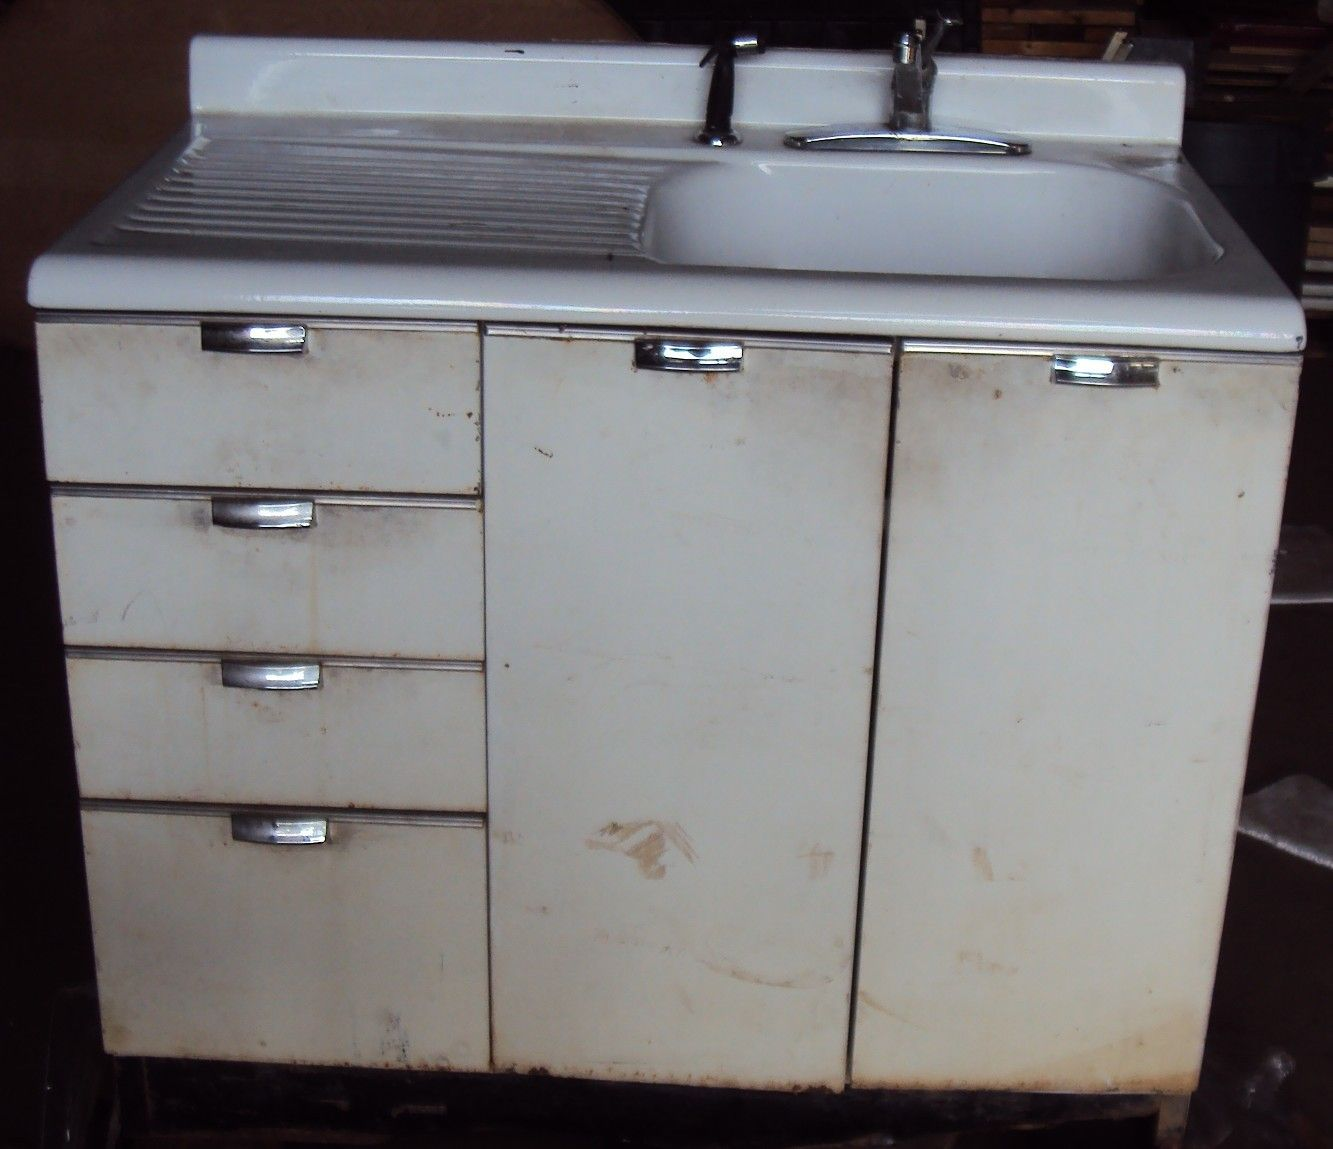 Vintage Kitchen Sink Cabinet Enamel Steel W Drawers Vintage Kitchen Sink Metal Kitchen Cabinets Kitchen Cabinet Inspiration